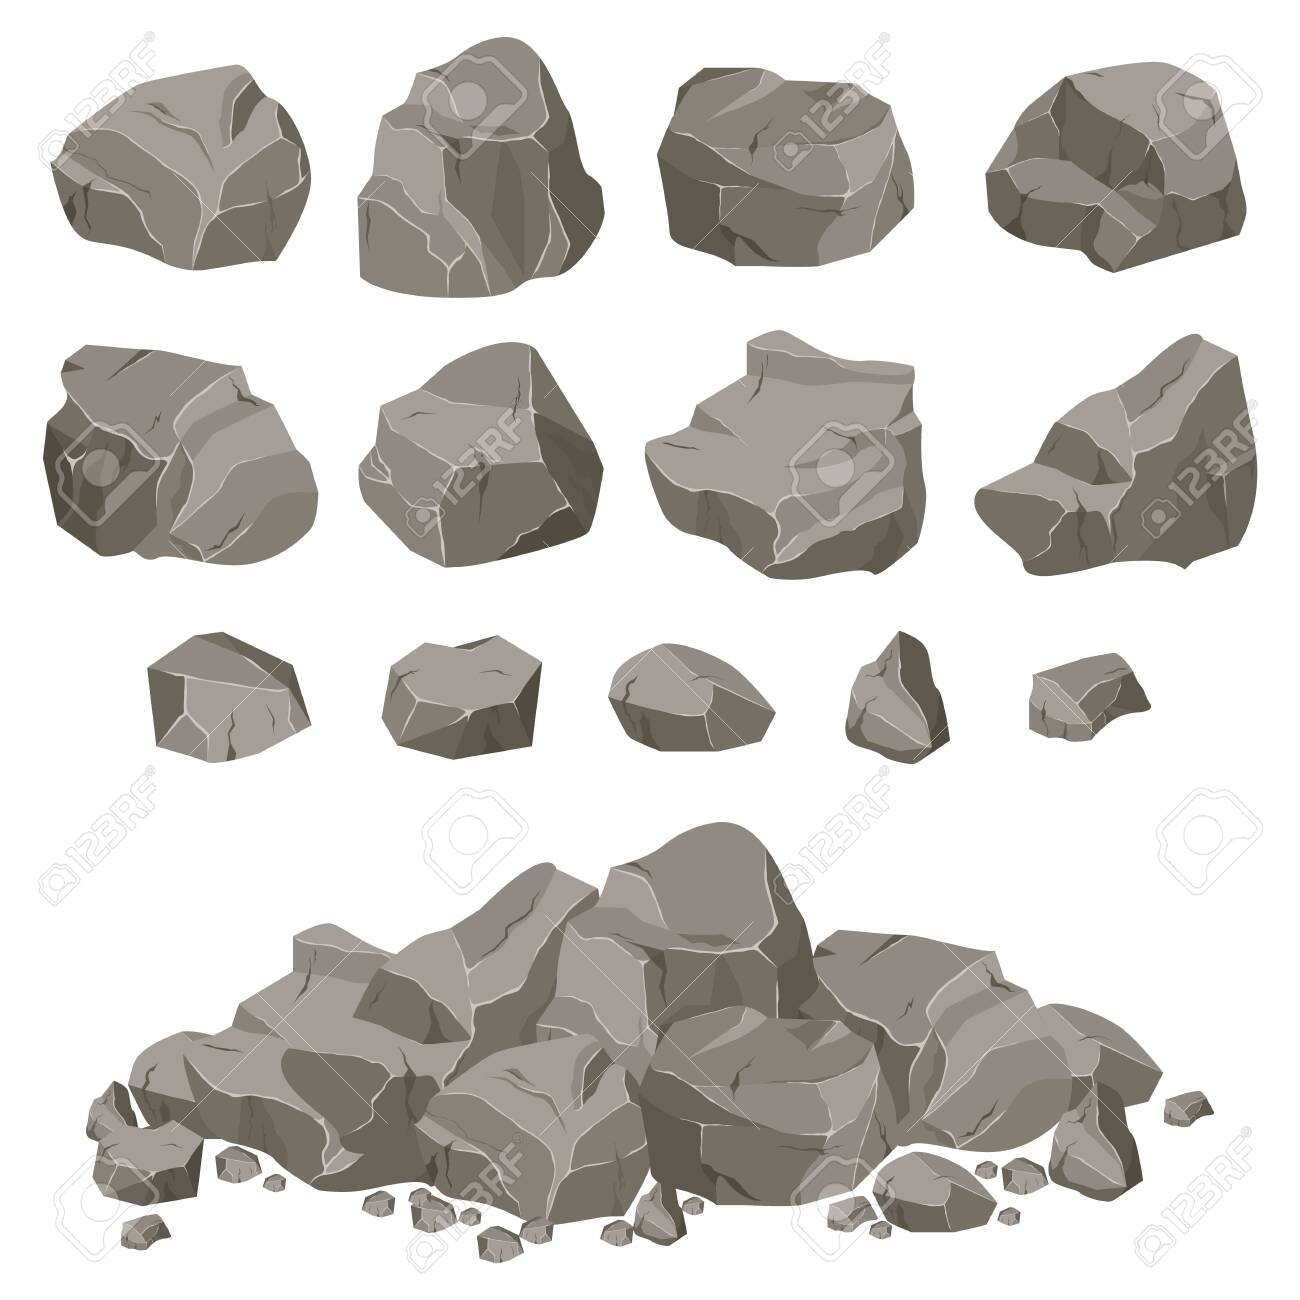 Ð¡ollection of stones of various shapes. Stones and rocks in isometric 3d flat style. - 144324723